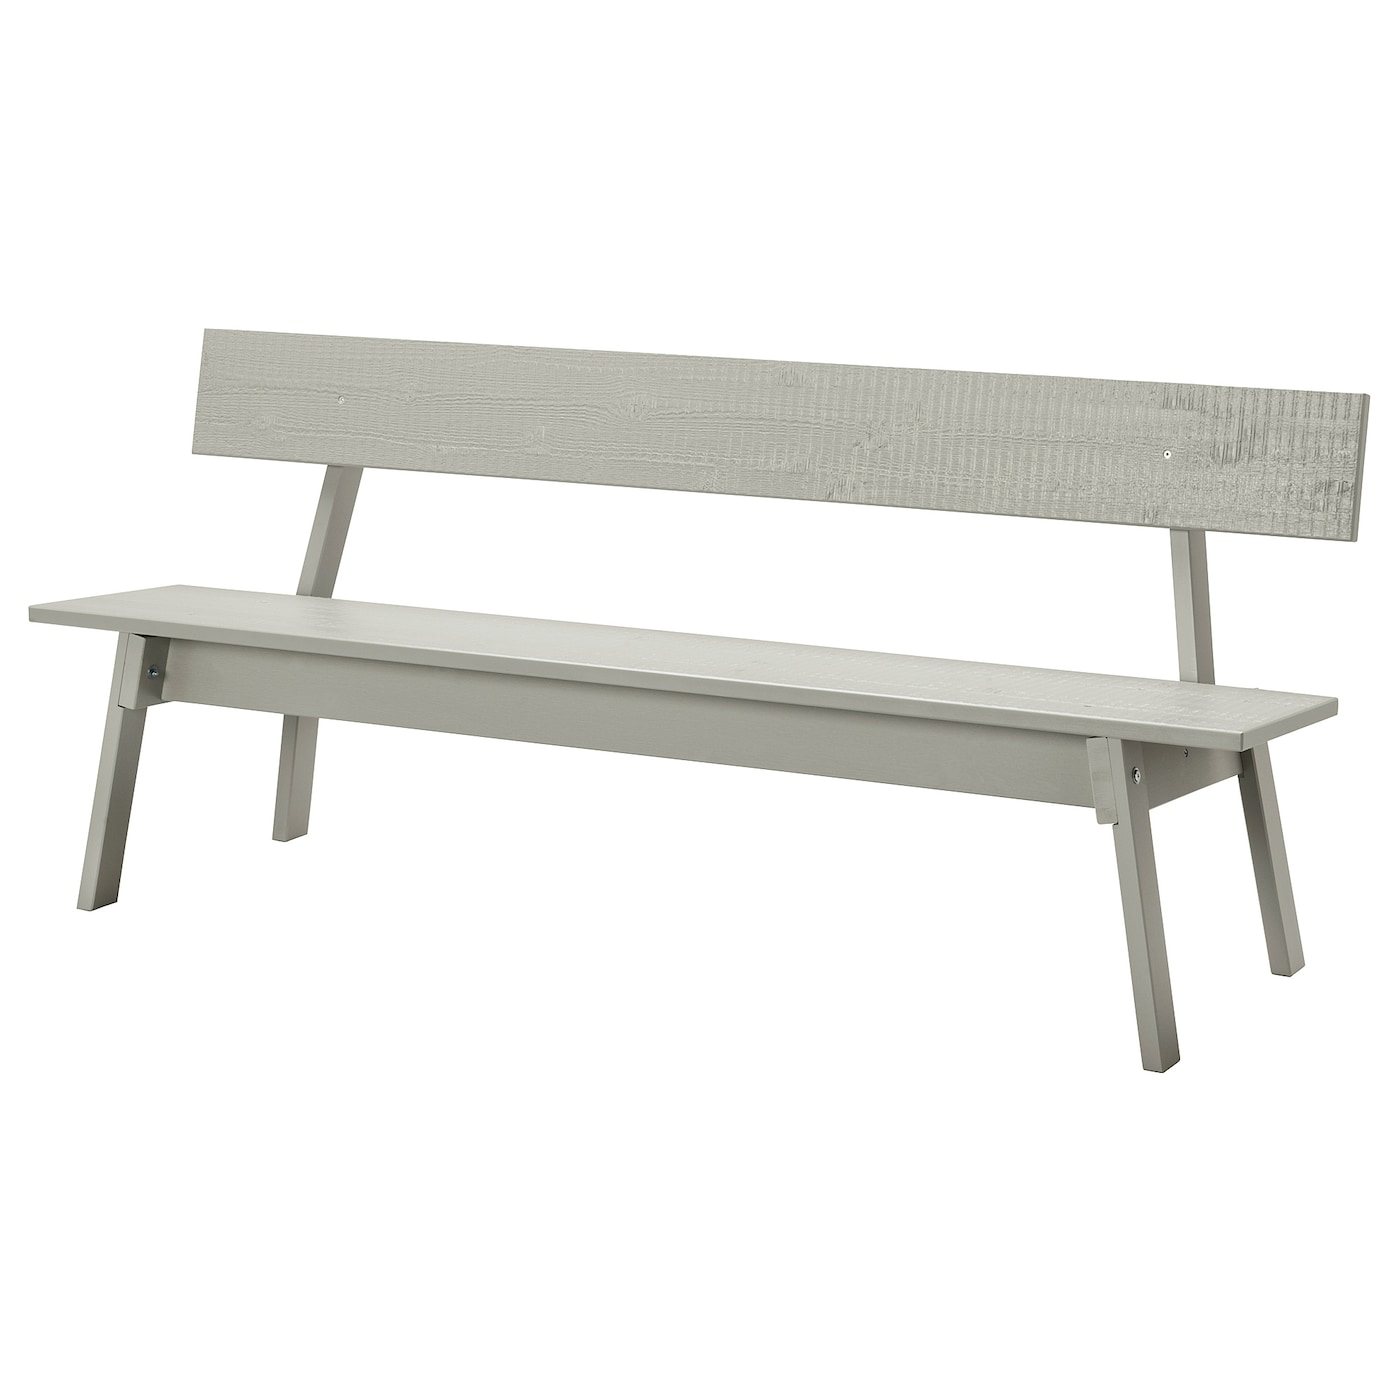 IKEA INDUSTRIELL bench The included plastic feet protect the floor from scratches.